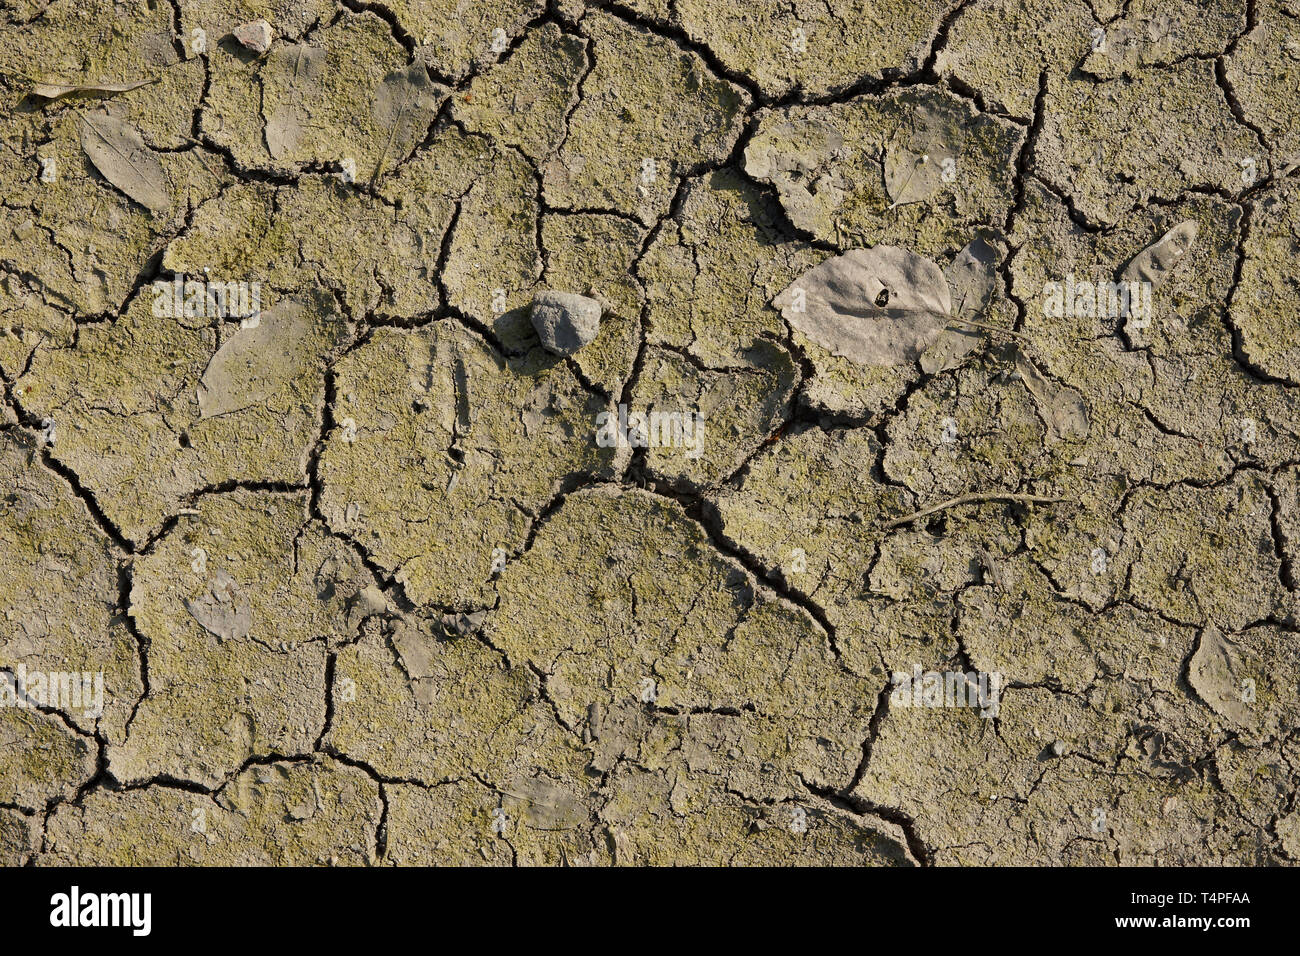 leaves and drying cracks on clay soil - Stock Image